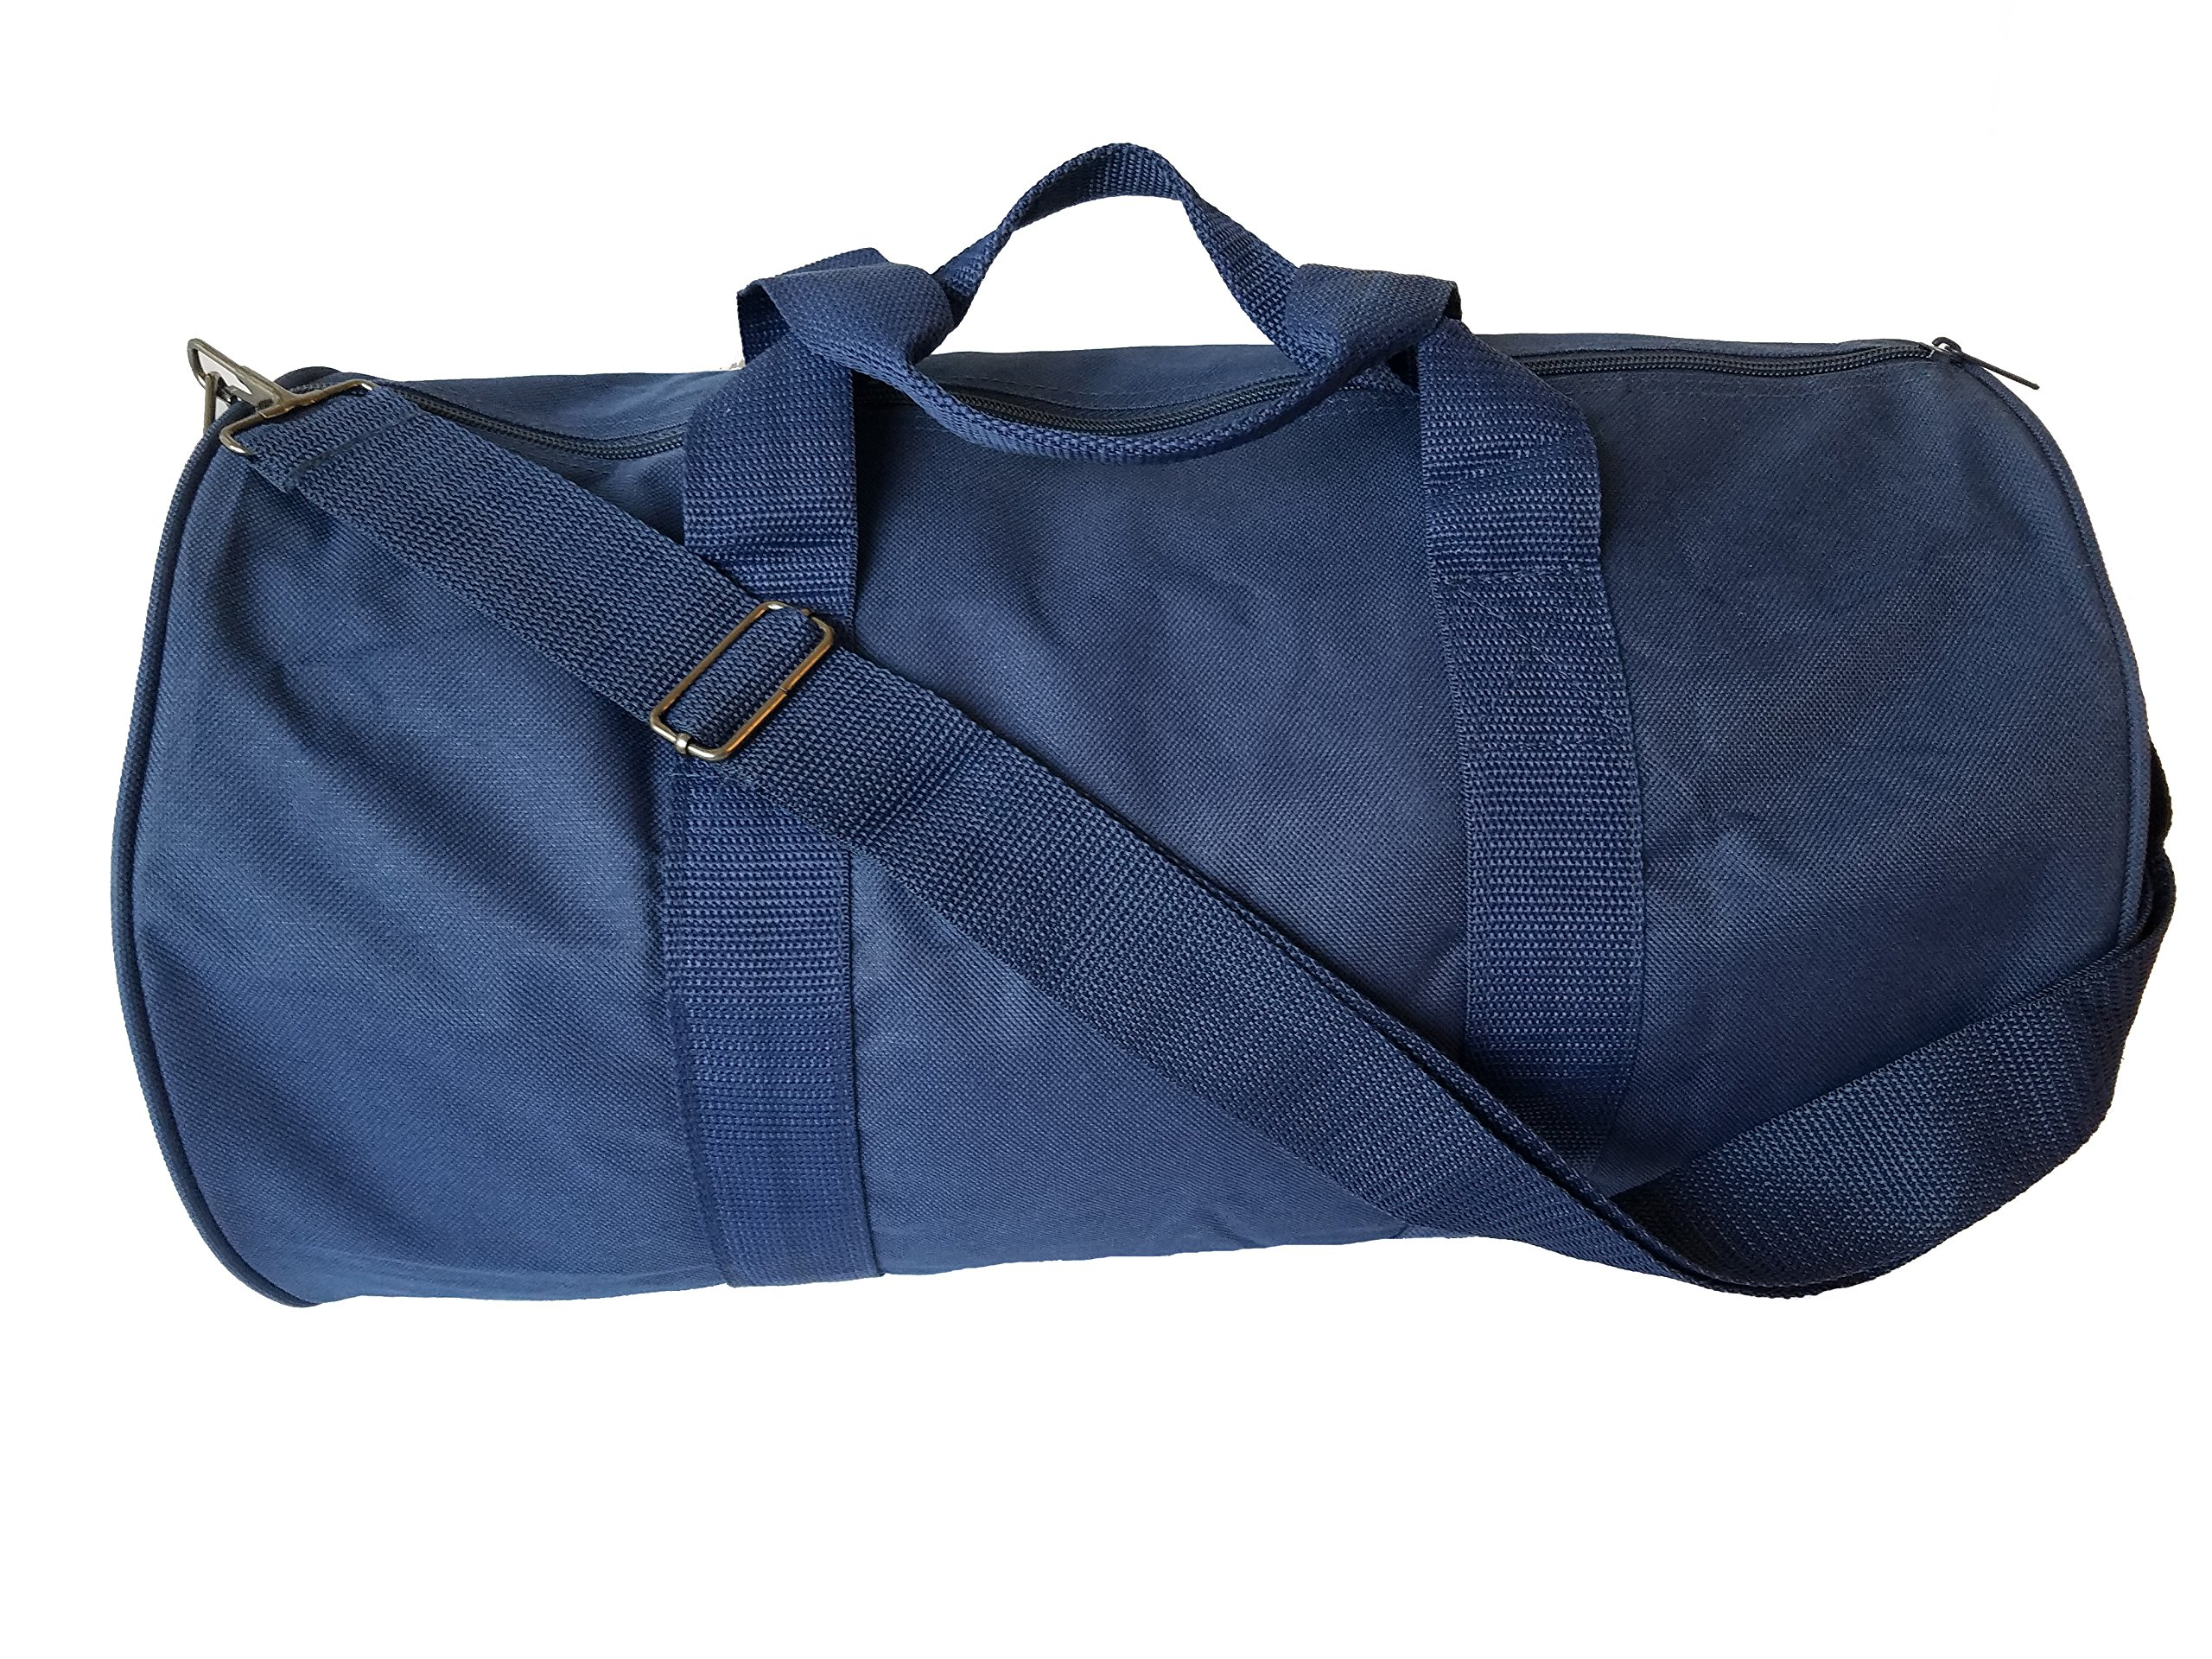 ImpecGear Round Duffel Sports Bags, Travel Gym Fitness Bag. (Navy)